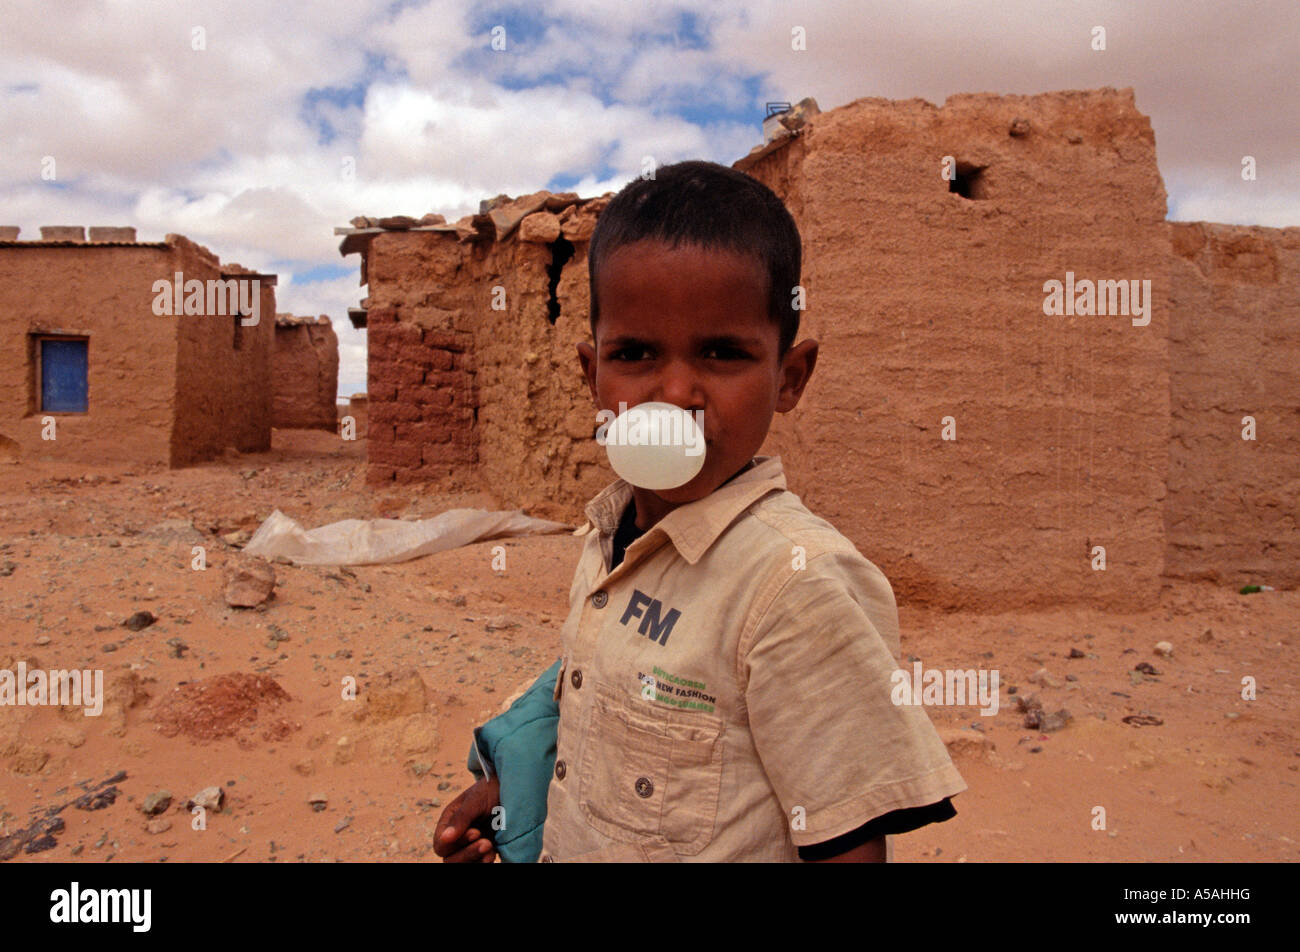 A Sahrawi having chewing gum in Tindouf Western Algeria - Stock Image